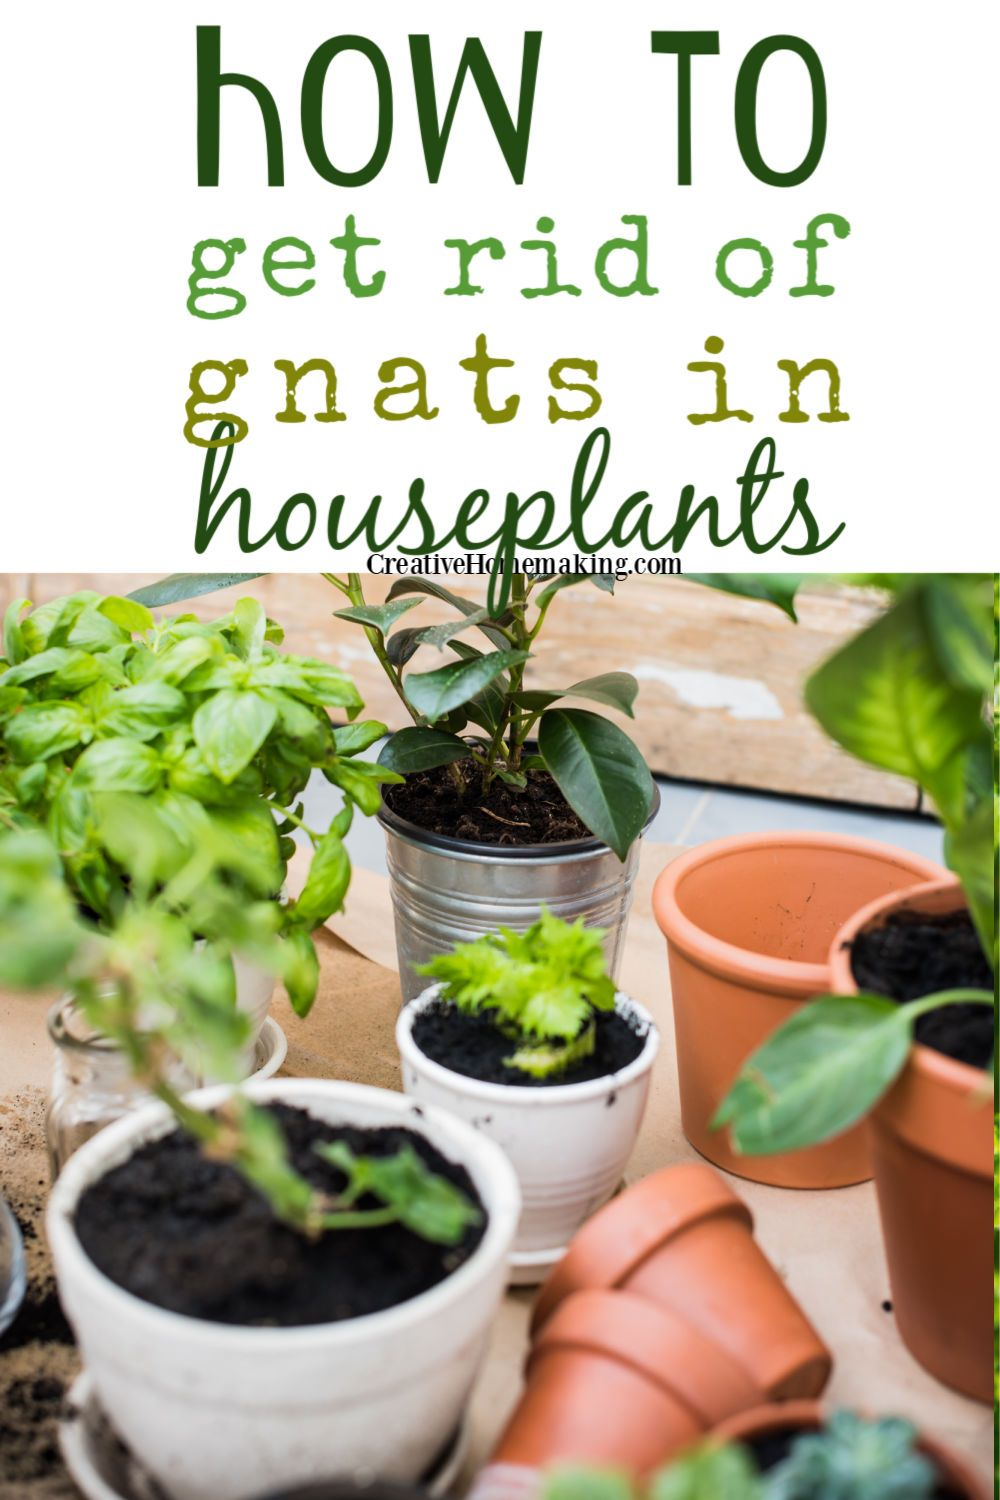 ae7a53b105d1ac312d6fc0d5b008db63 - How To Get Rid Of Gnats On Indoor House Plants